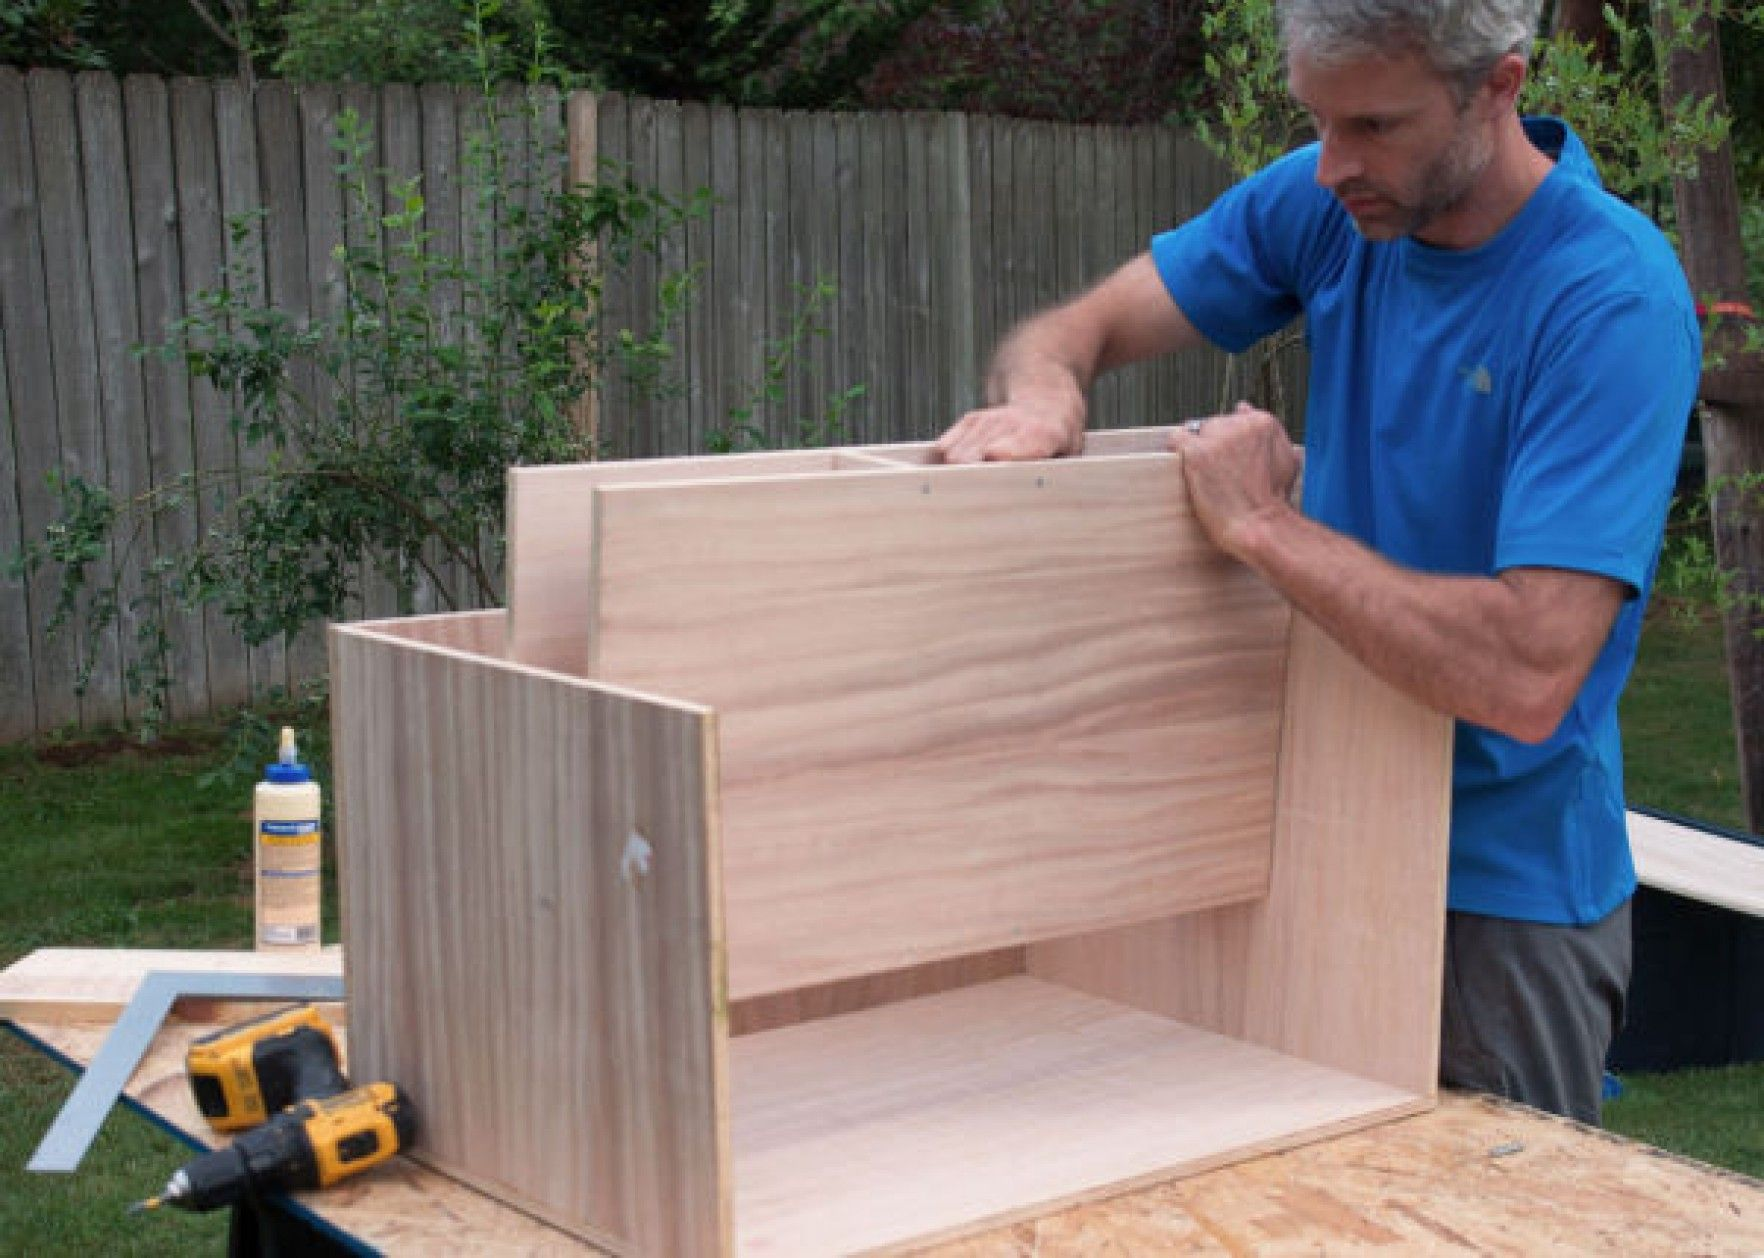 How to Build Your Own Camp Kitchen Chuck Box | Outdoor ...